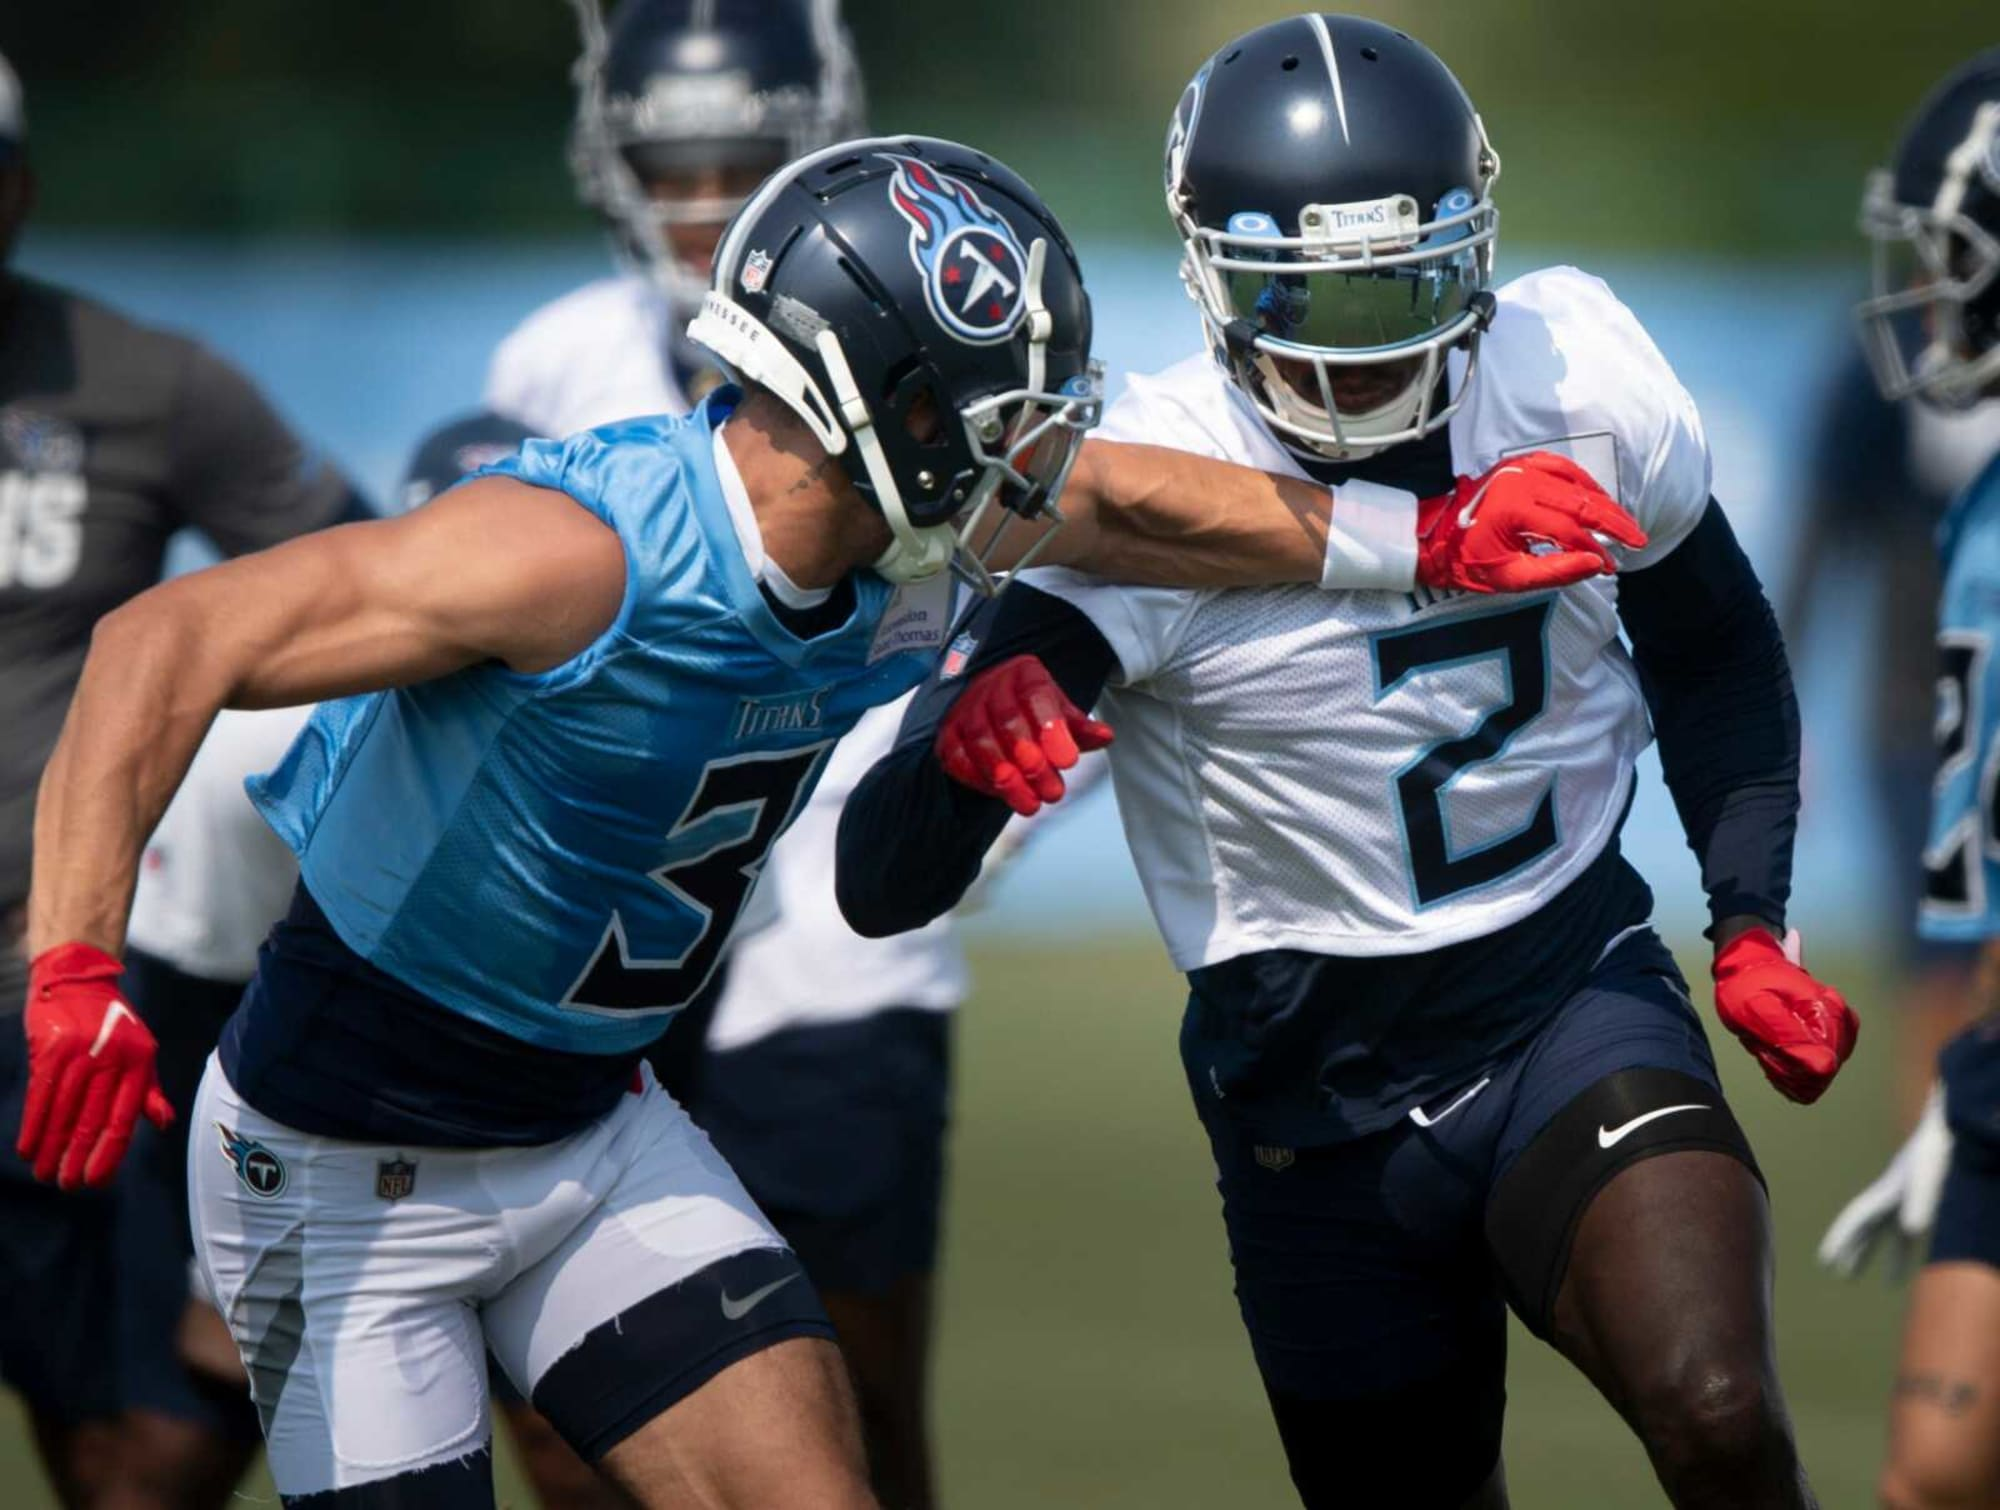 Tennessee Titans injury report: 4 well-known players are questionable